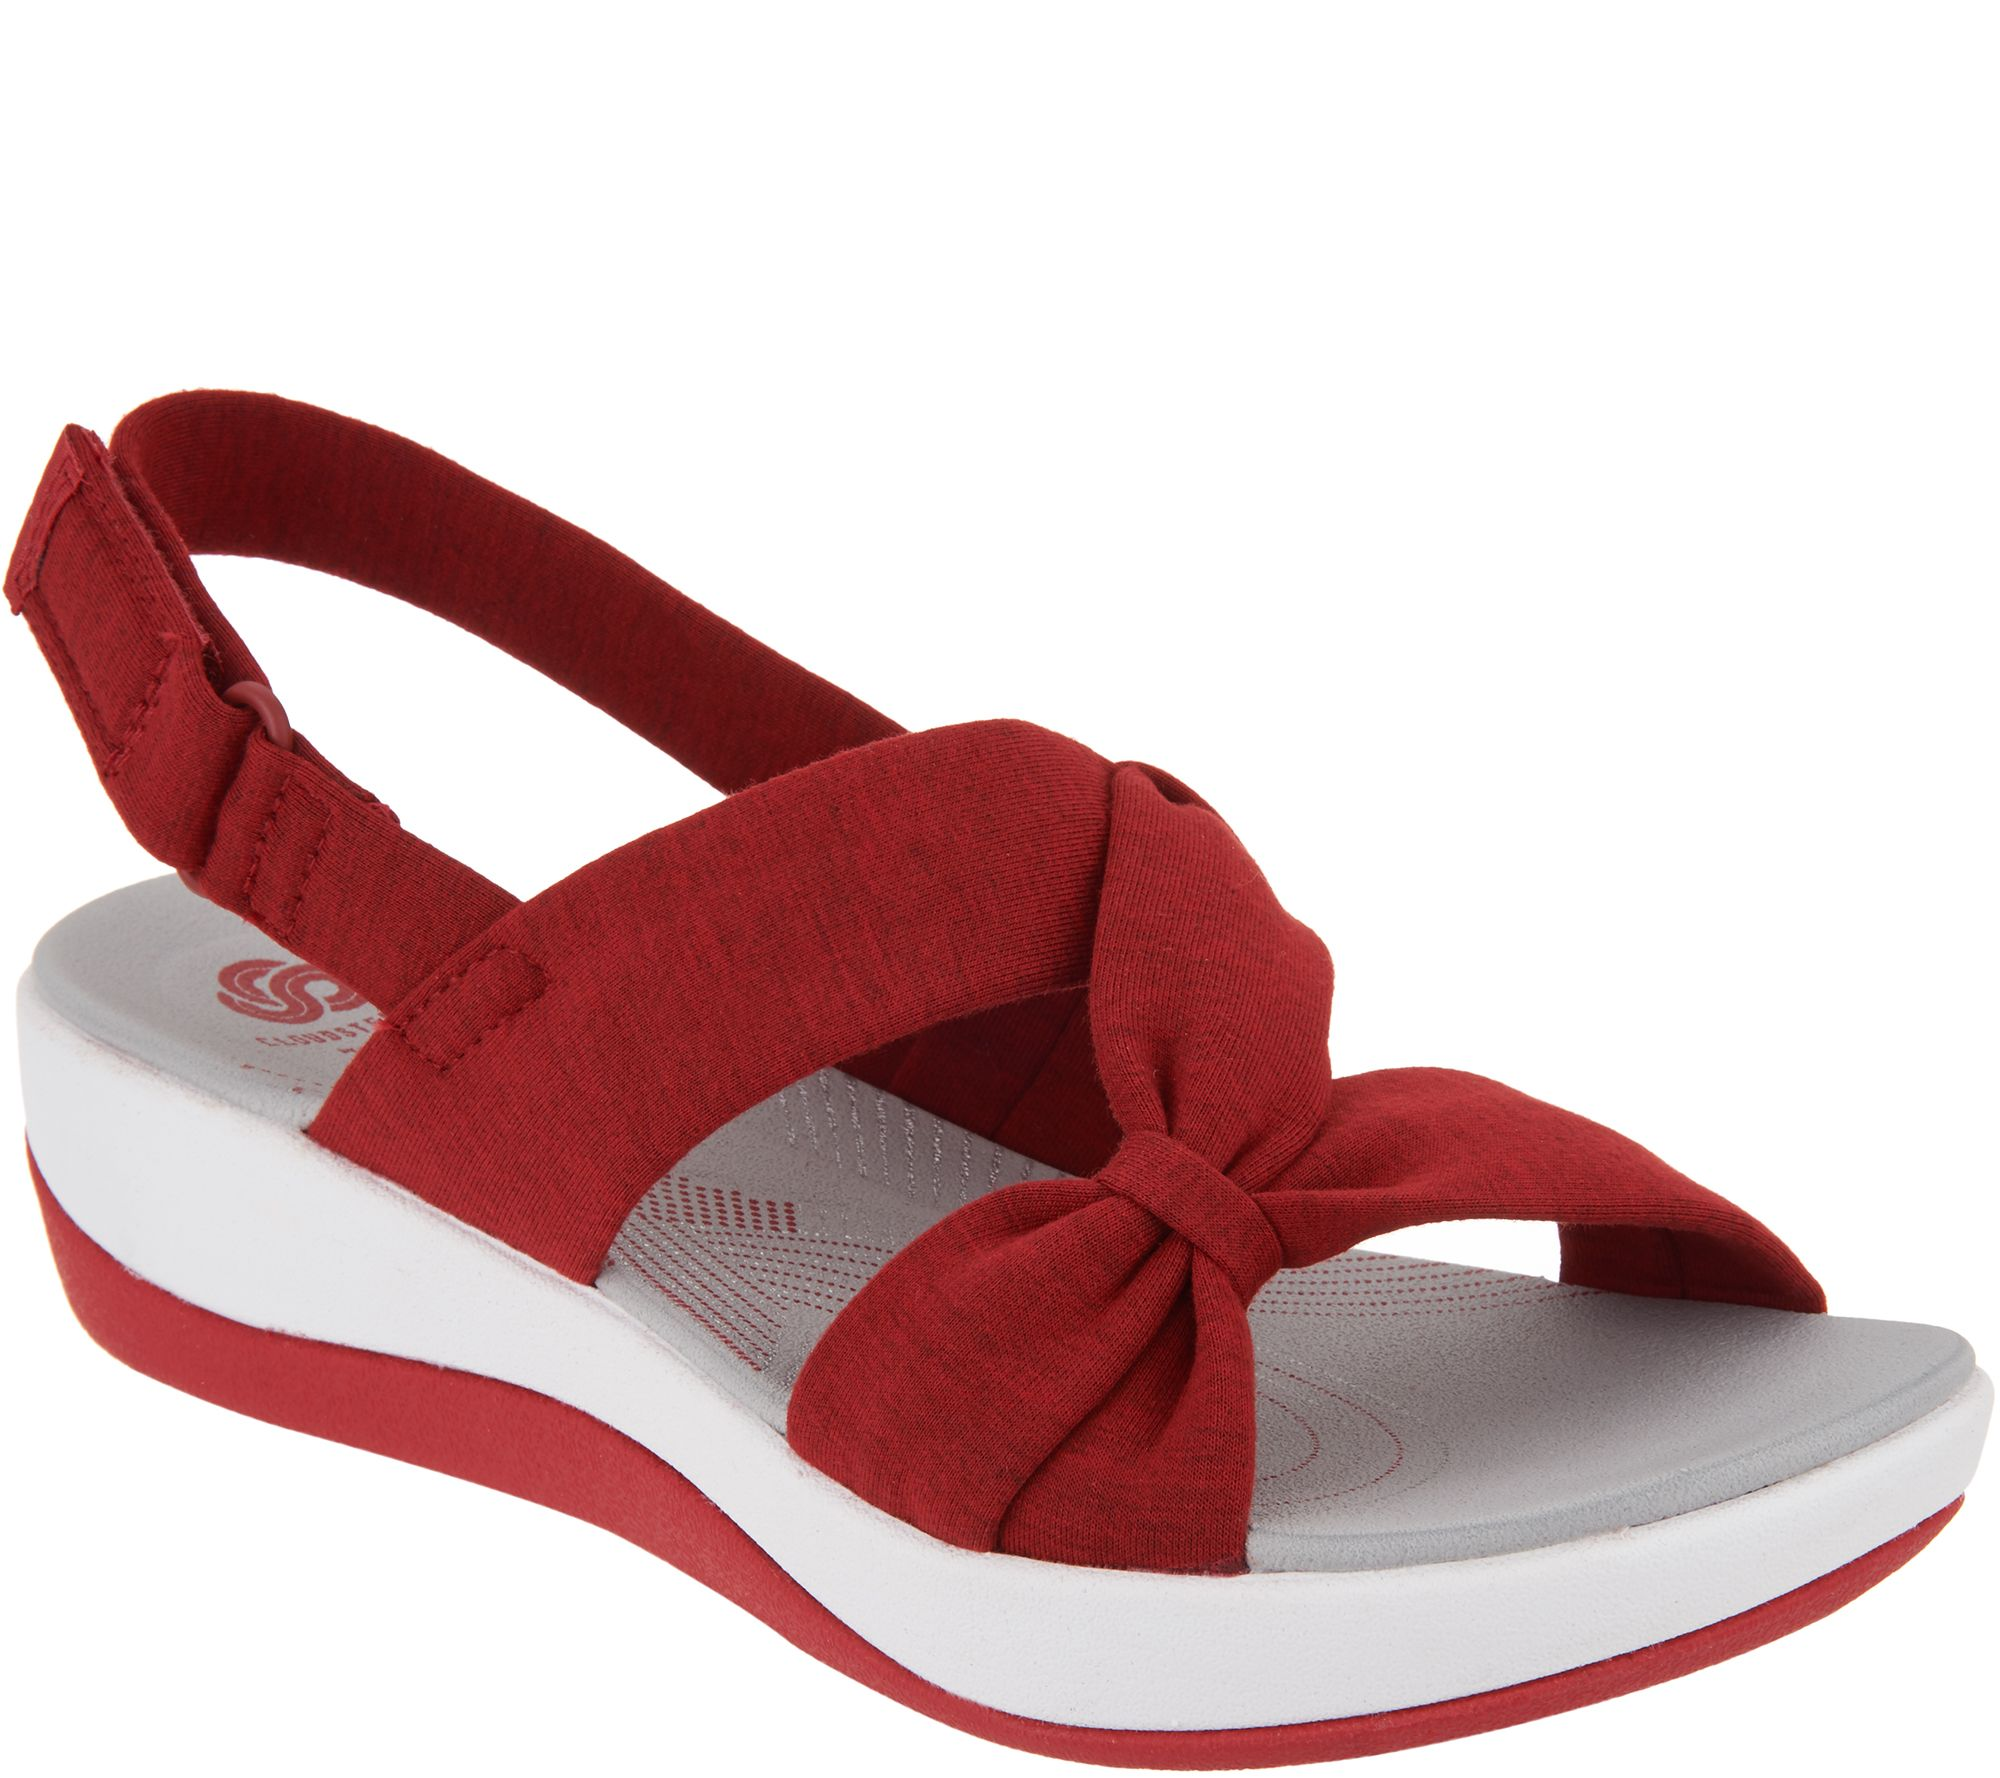 204be2086c7 CLOUDSTEPPERS by Clarks Sport Sandals - Arla Primrose - Page 1 — QVC.com